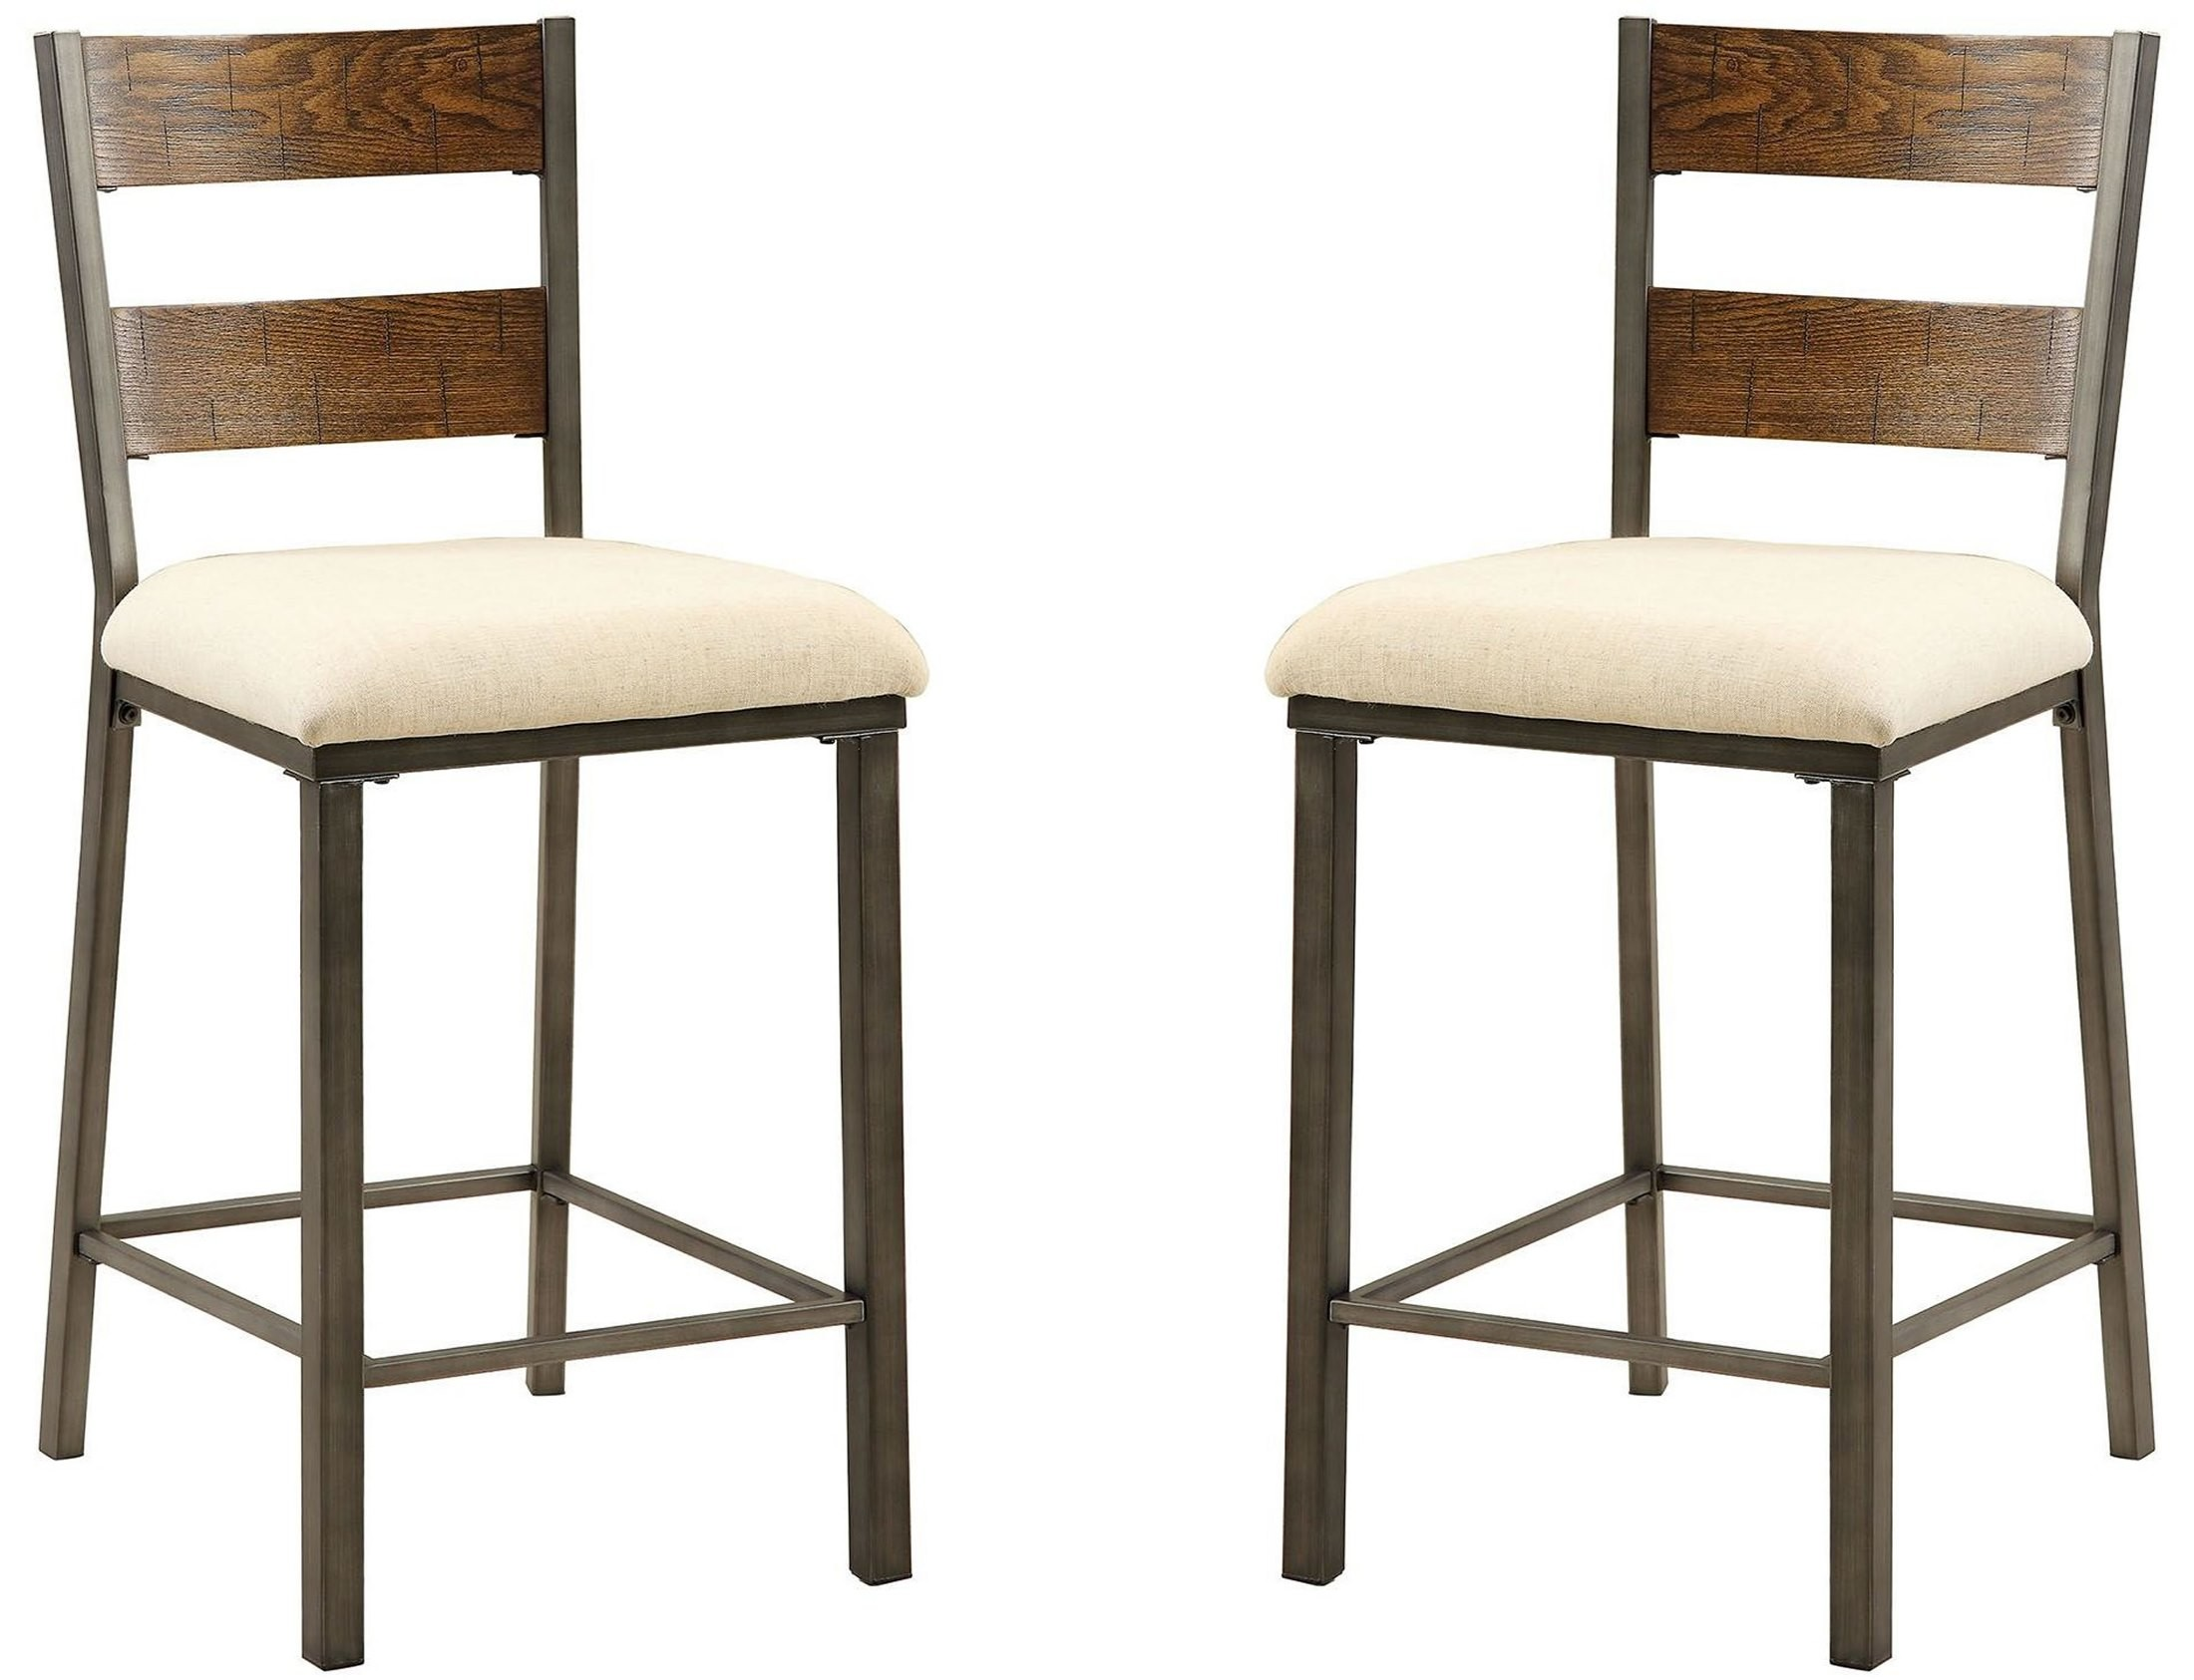 jazlyn ii weathered oak counter height chair set of 2 from f